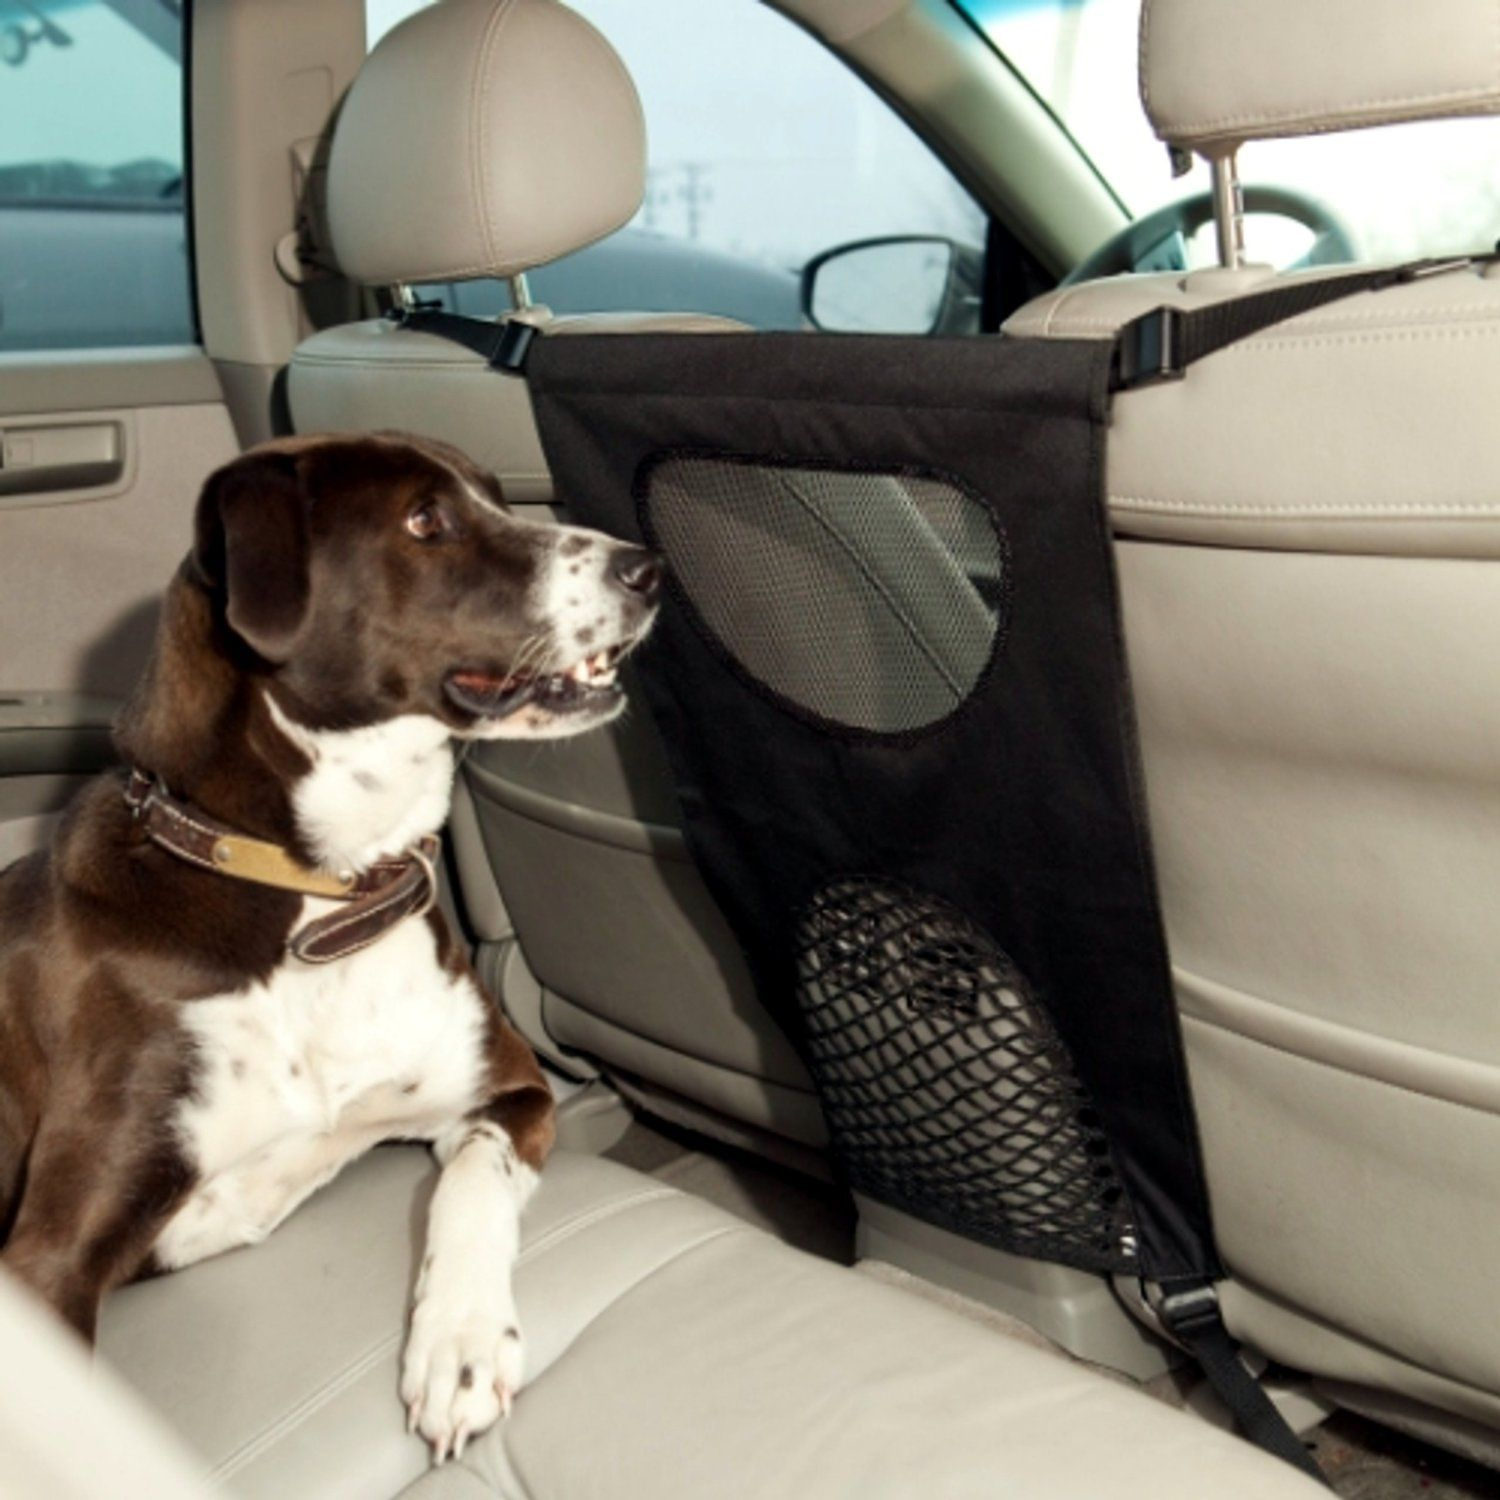 Amazon.com: Car Travel Accessories: Pet Supplies: Seat Covers ...